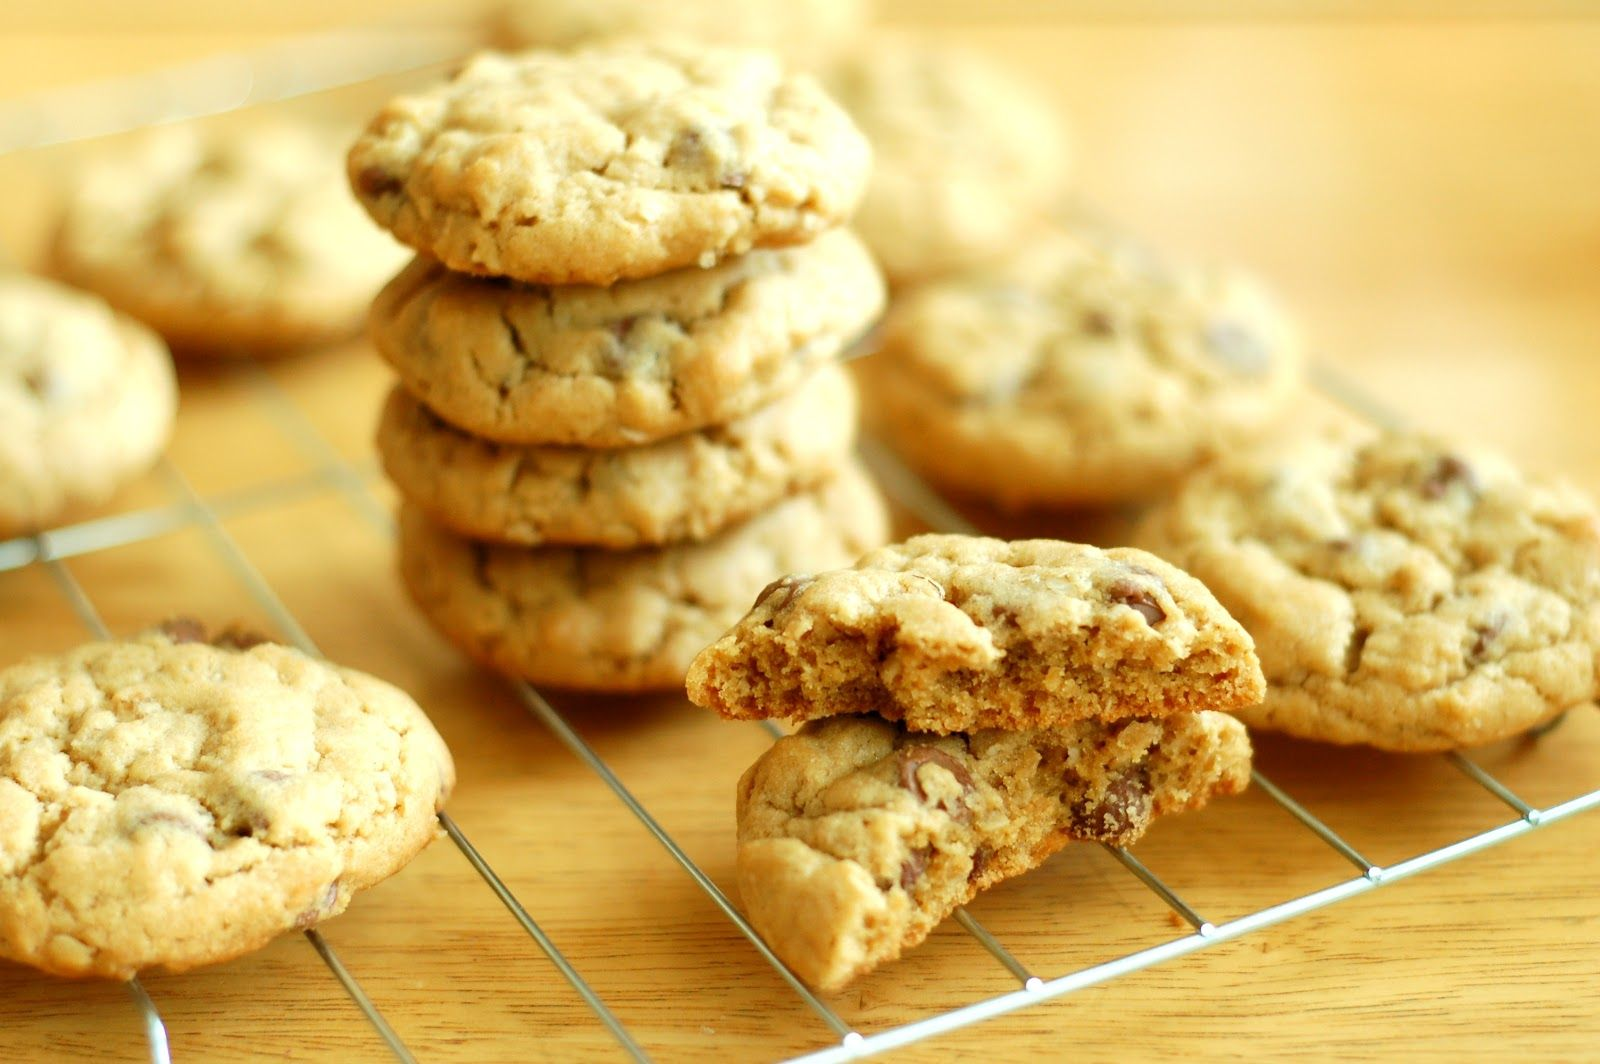 A Kitchen Addiction: Peanut Butter Chocolate Chip Oatmeal Cookies